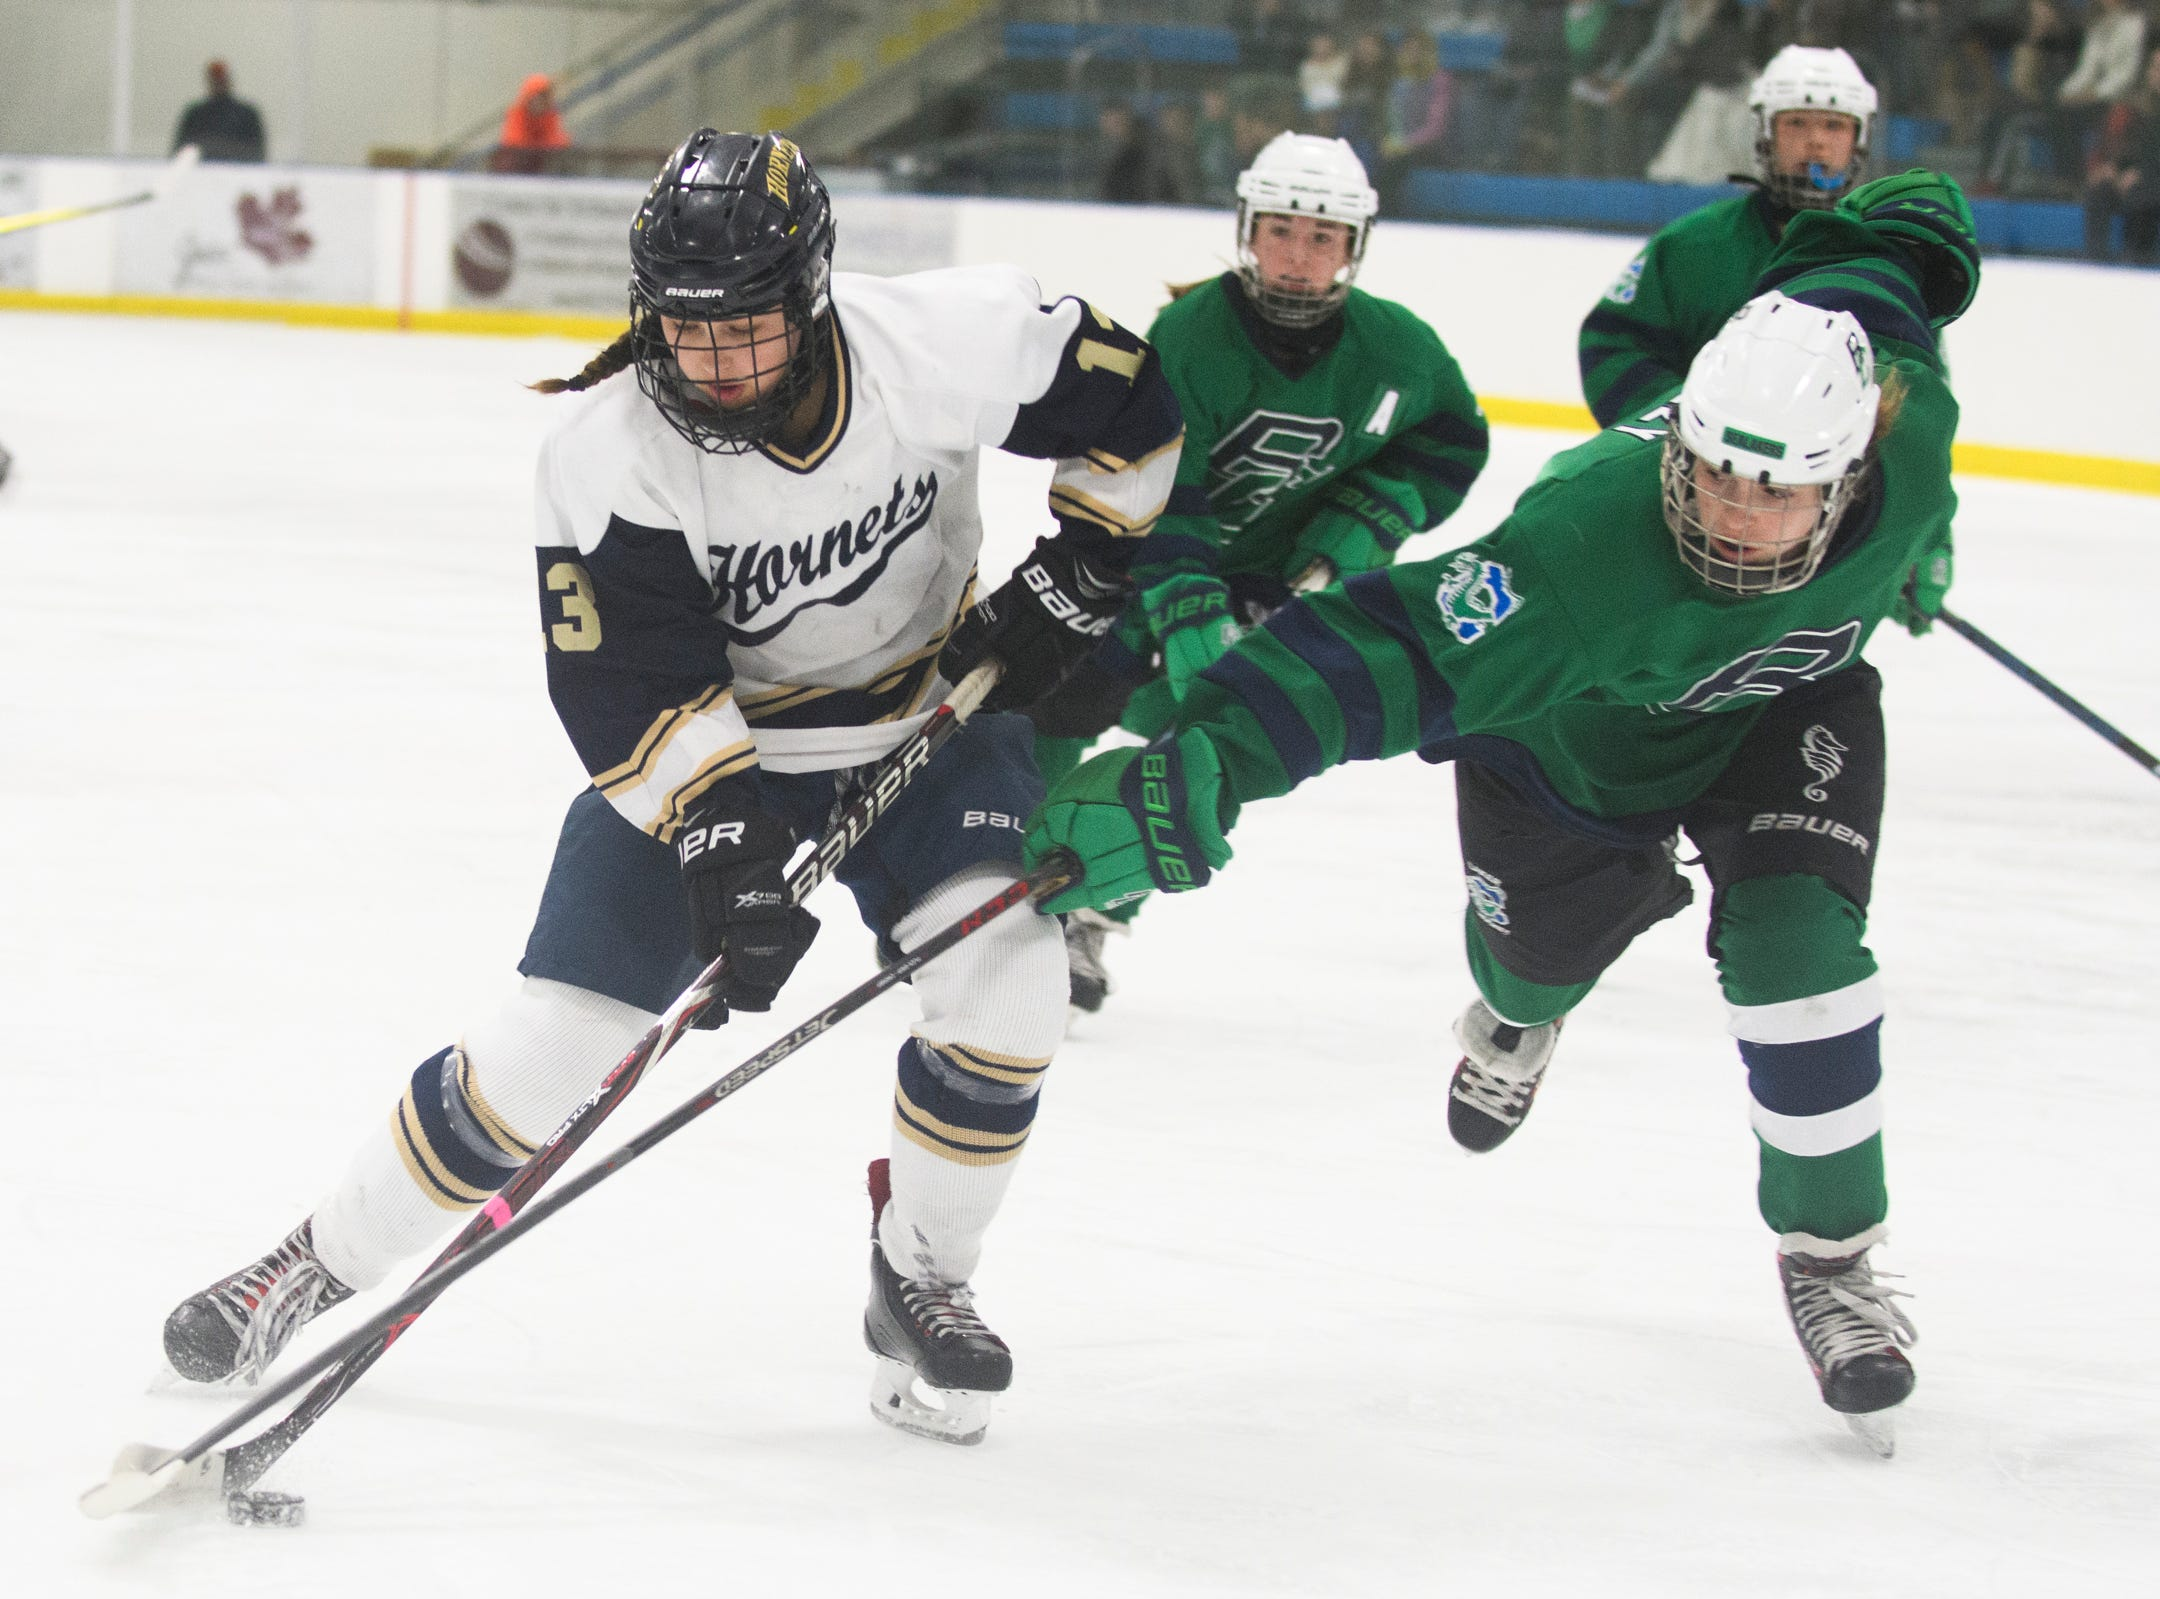 Burlington/Colchester's Kendall Muzzy (24) battles for the puck with Essex's Abigail Robbins (13) during the girls semi final hockey game between the Burlington/Colchester Sea Lakers vs. Essex Hornets at Essex skating rink on Saturday afternoon March 9, 2019 in Essex, Vermont.